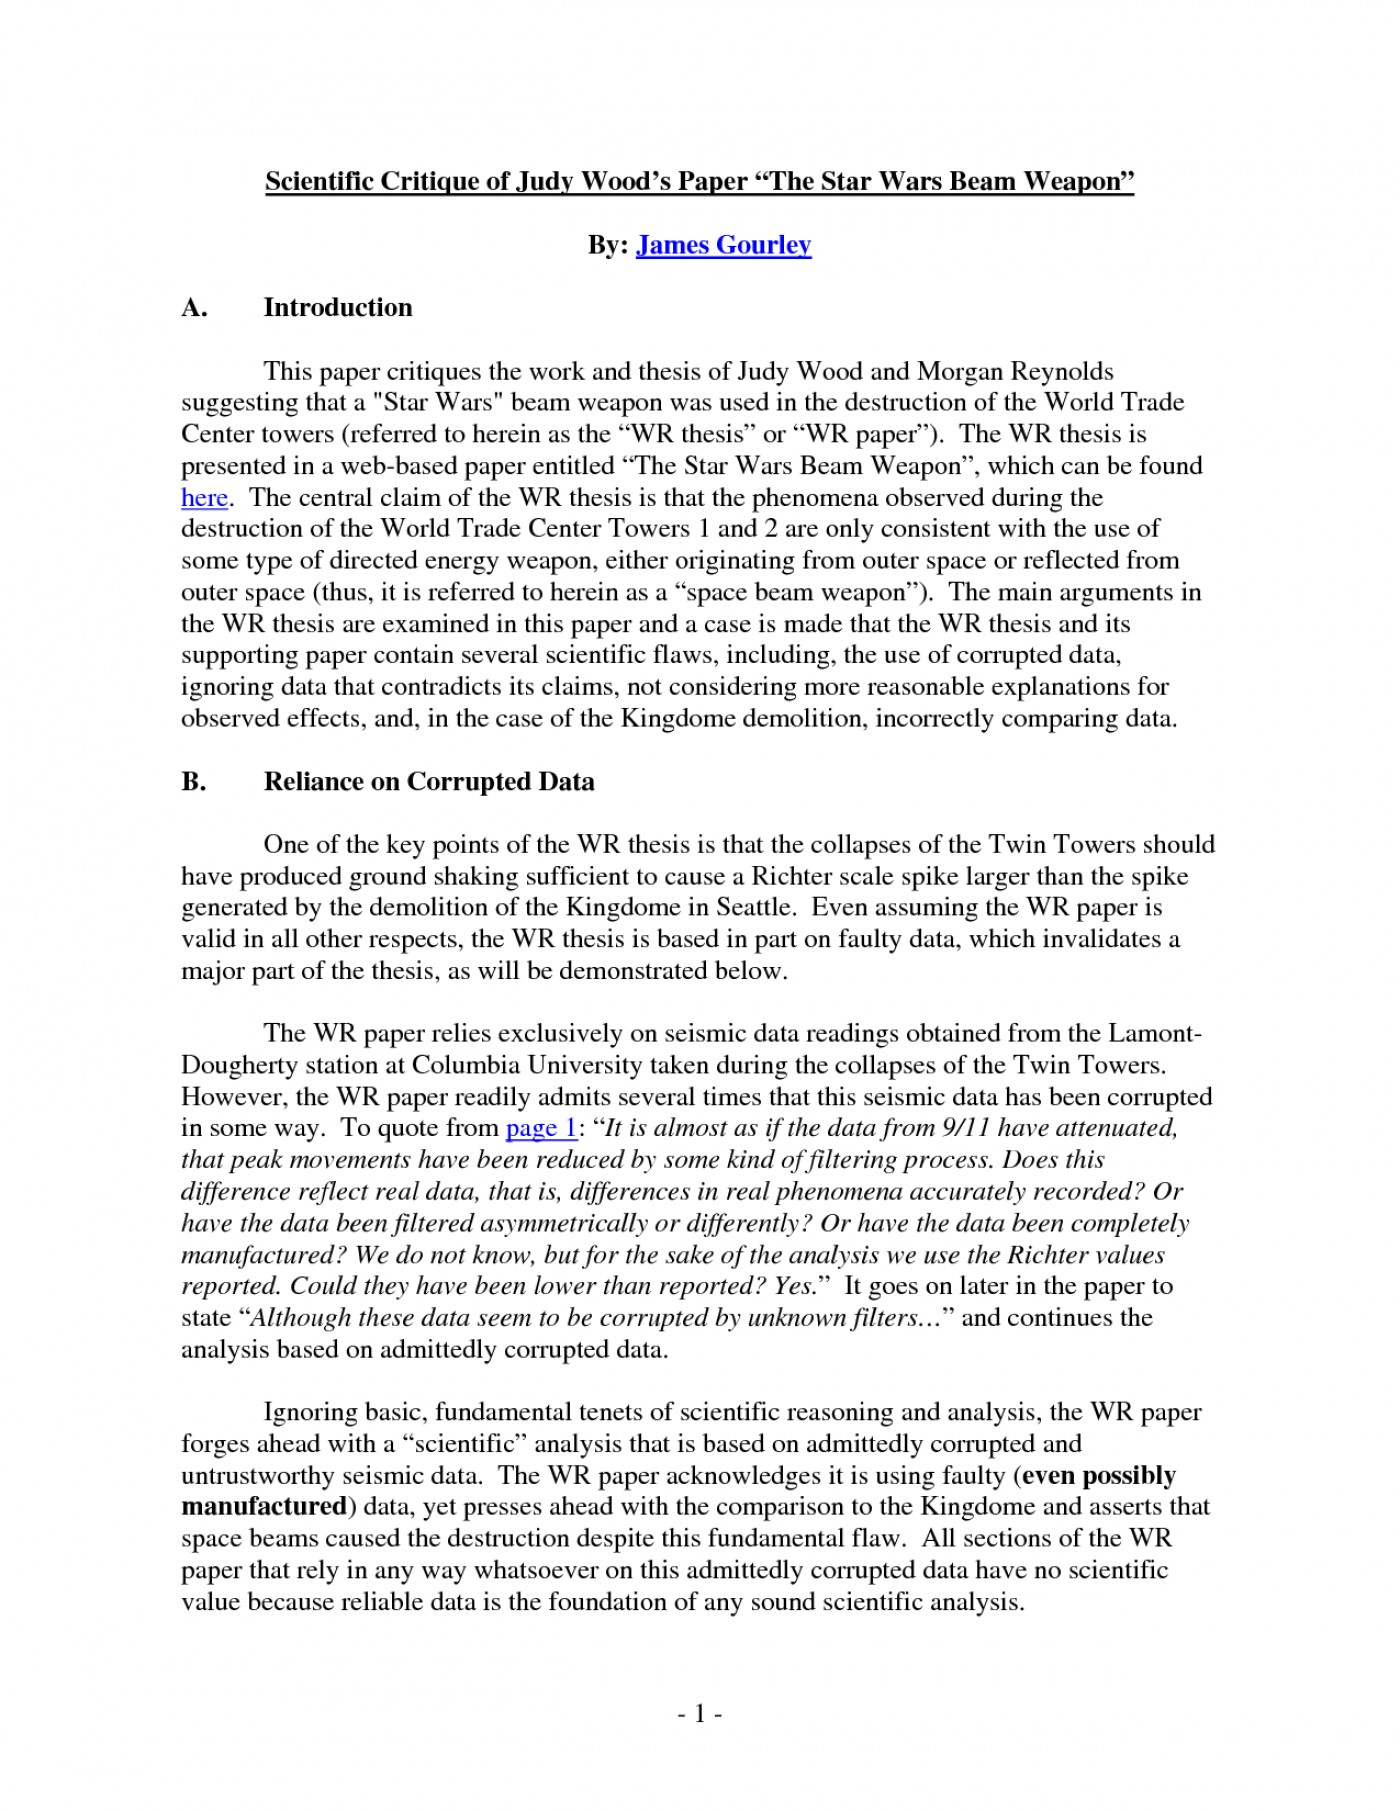 003 Critique Essay Example Of Research Paper 131380 Remarkable Layout Speech Examples How To Write A An Article 1400